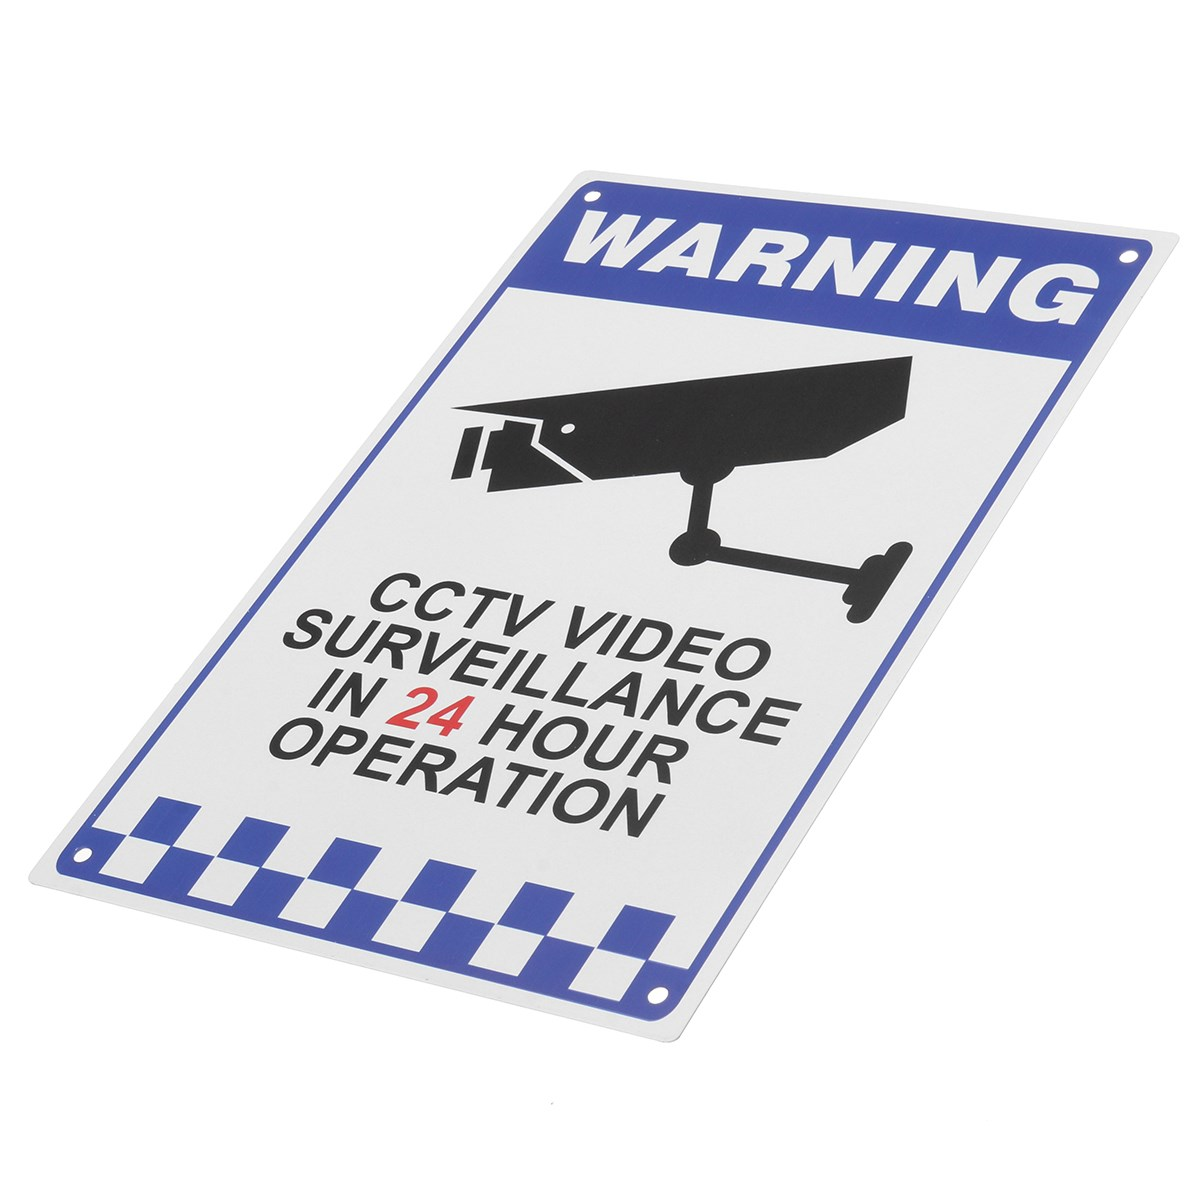 NEW CCTV Warning Security Video Surveillance Camera Safety Security Sign Reflactive Metal new safurance 10pcs lot waterproof sunscreen pvc home cctv video surveillance security camera alarm sticker warning decal signs